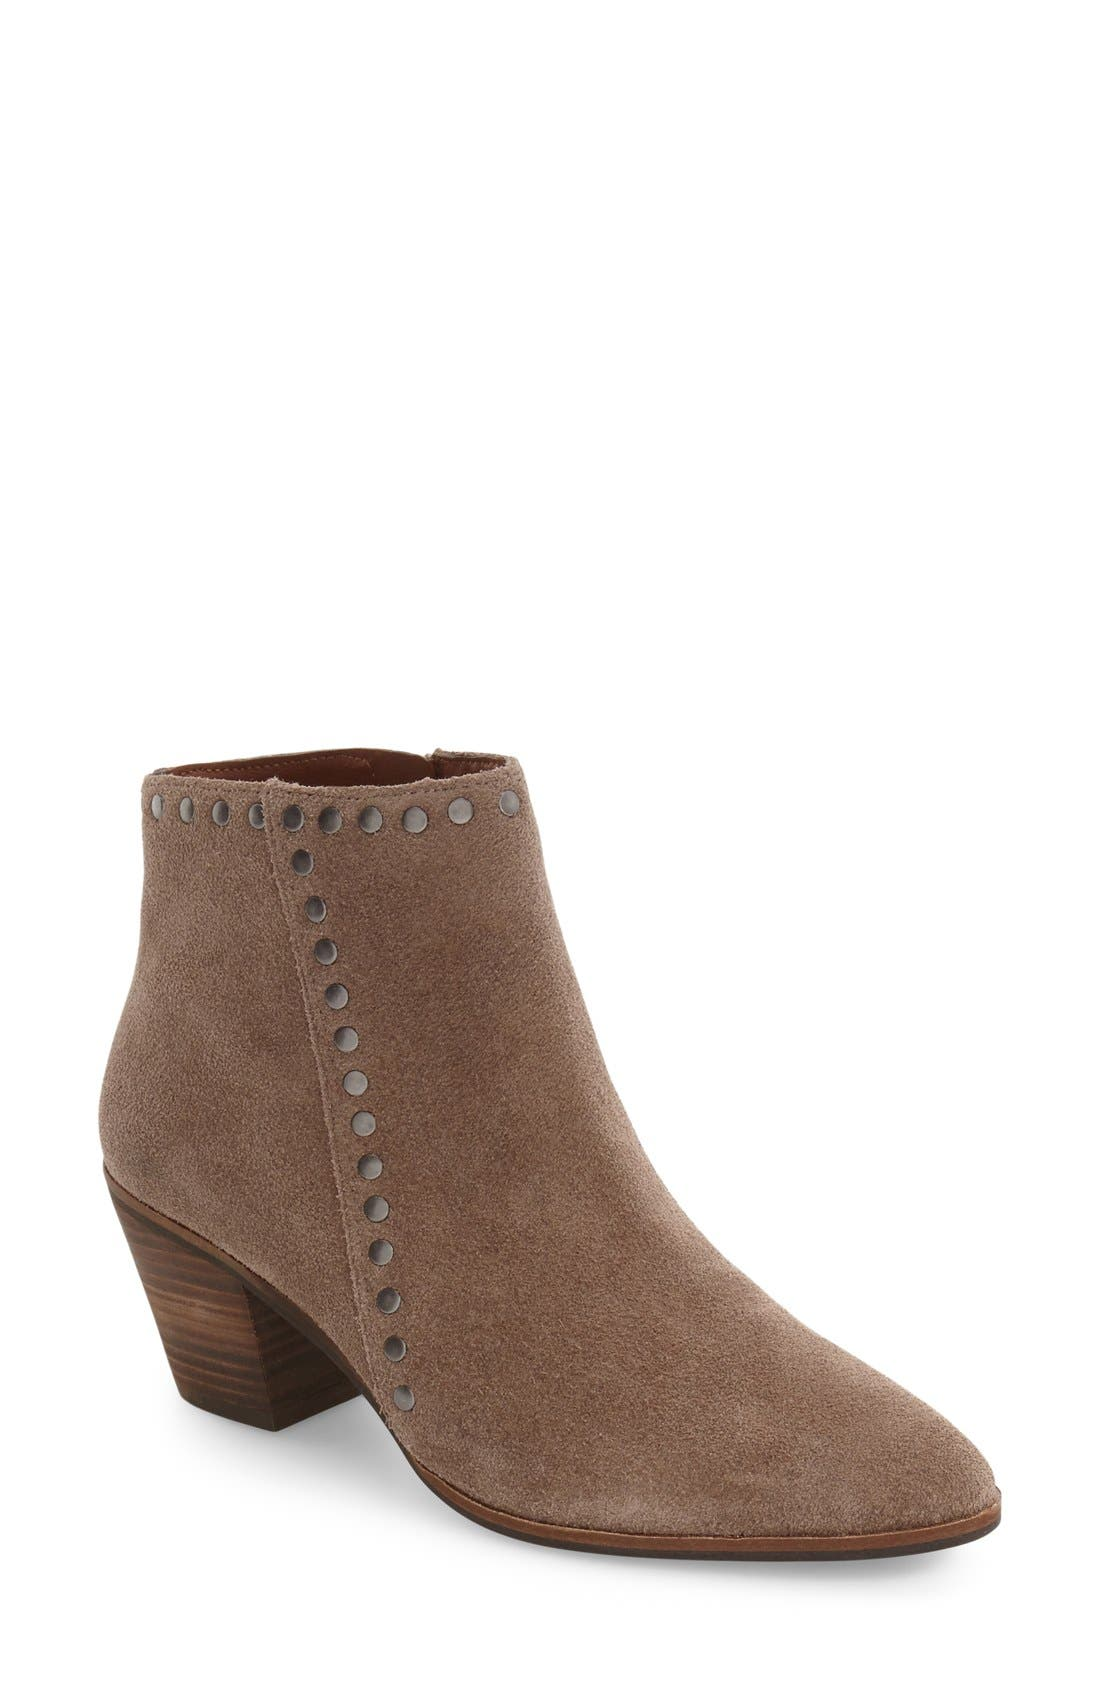 Alternate Image 1 Selected - Lucky Brand Linnea Studded Bootie (Women)